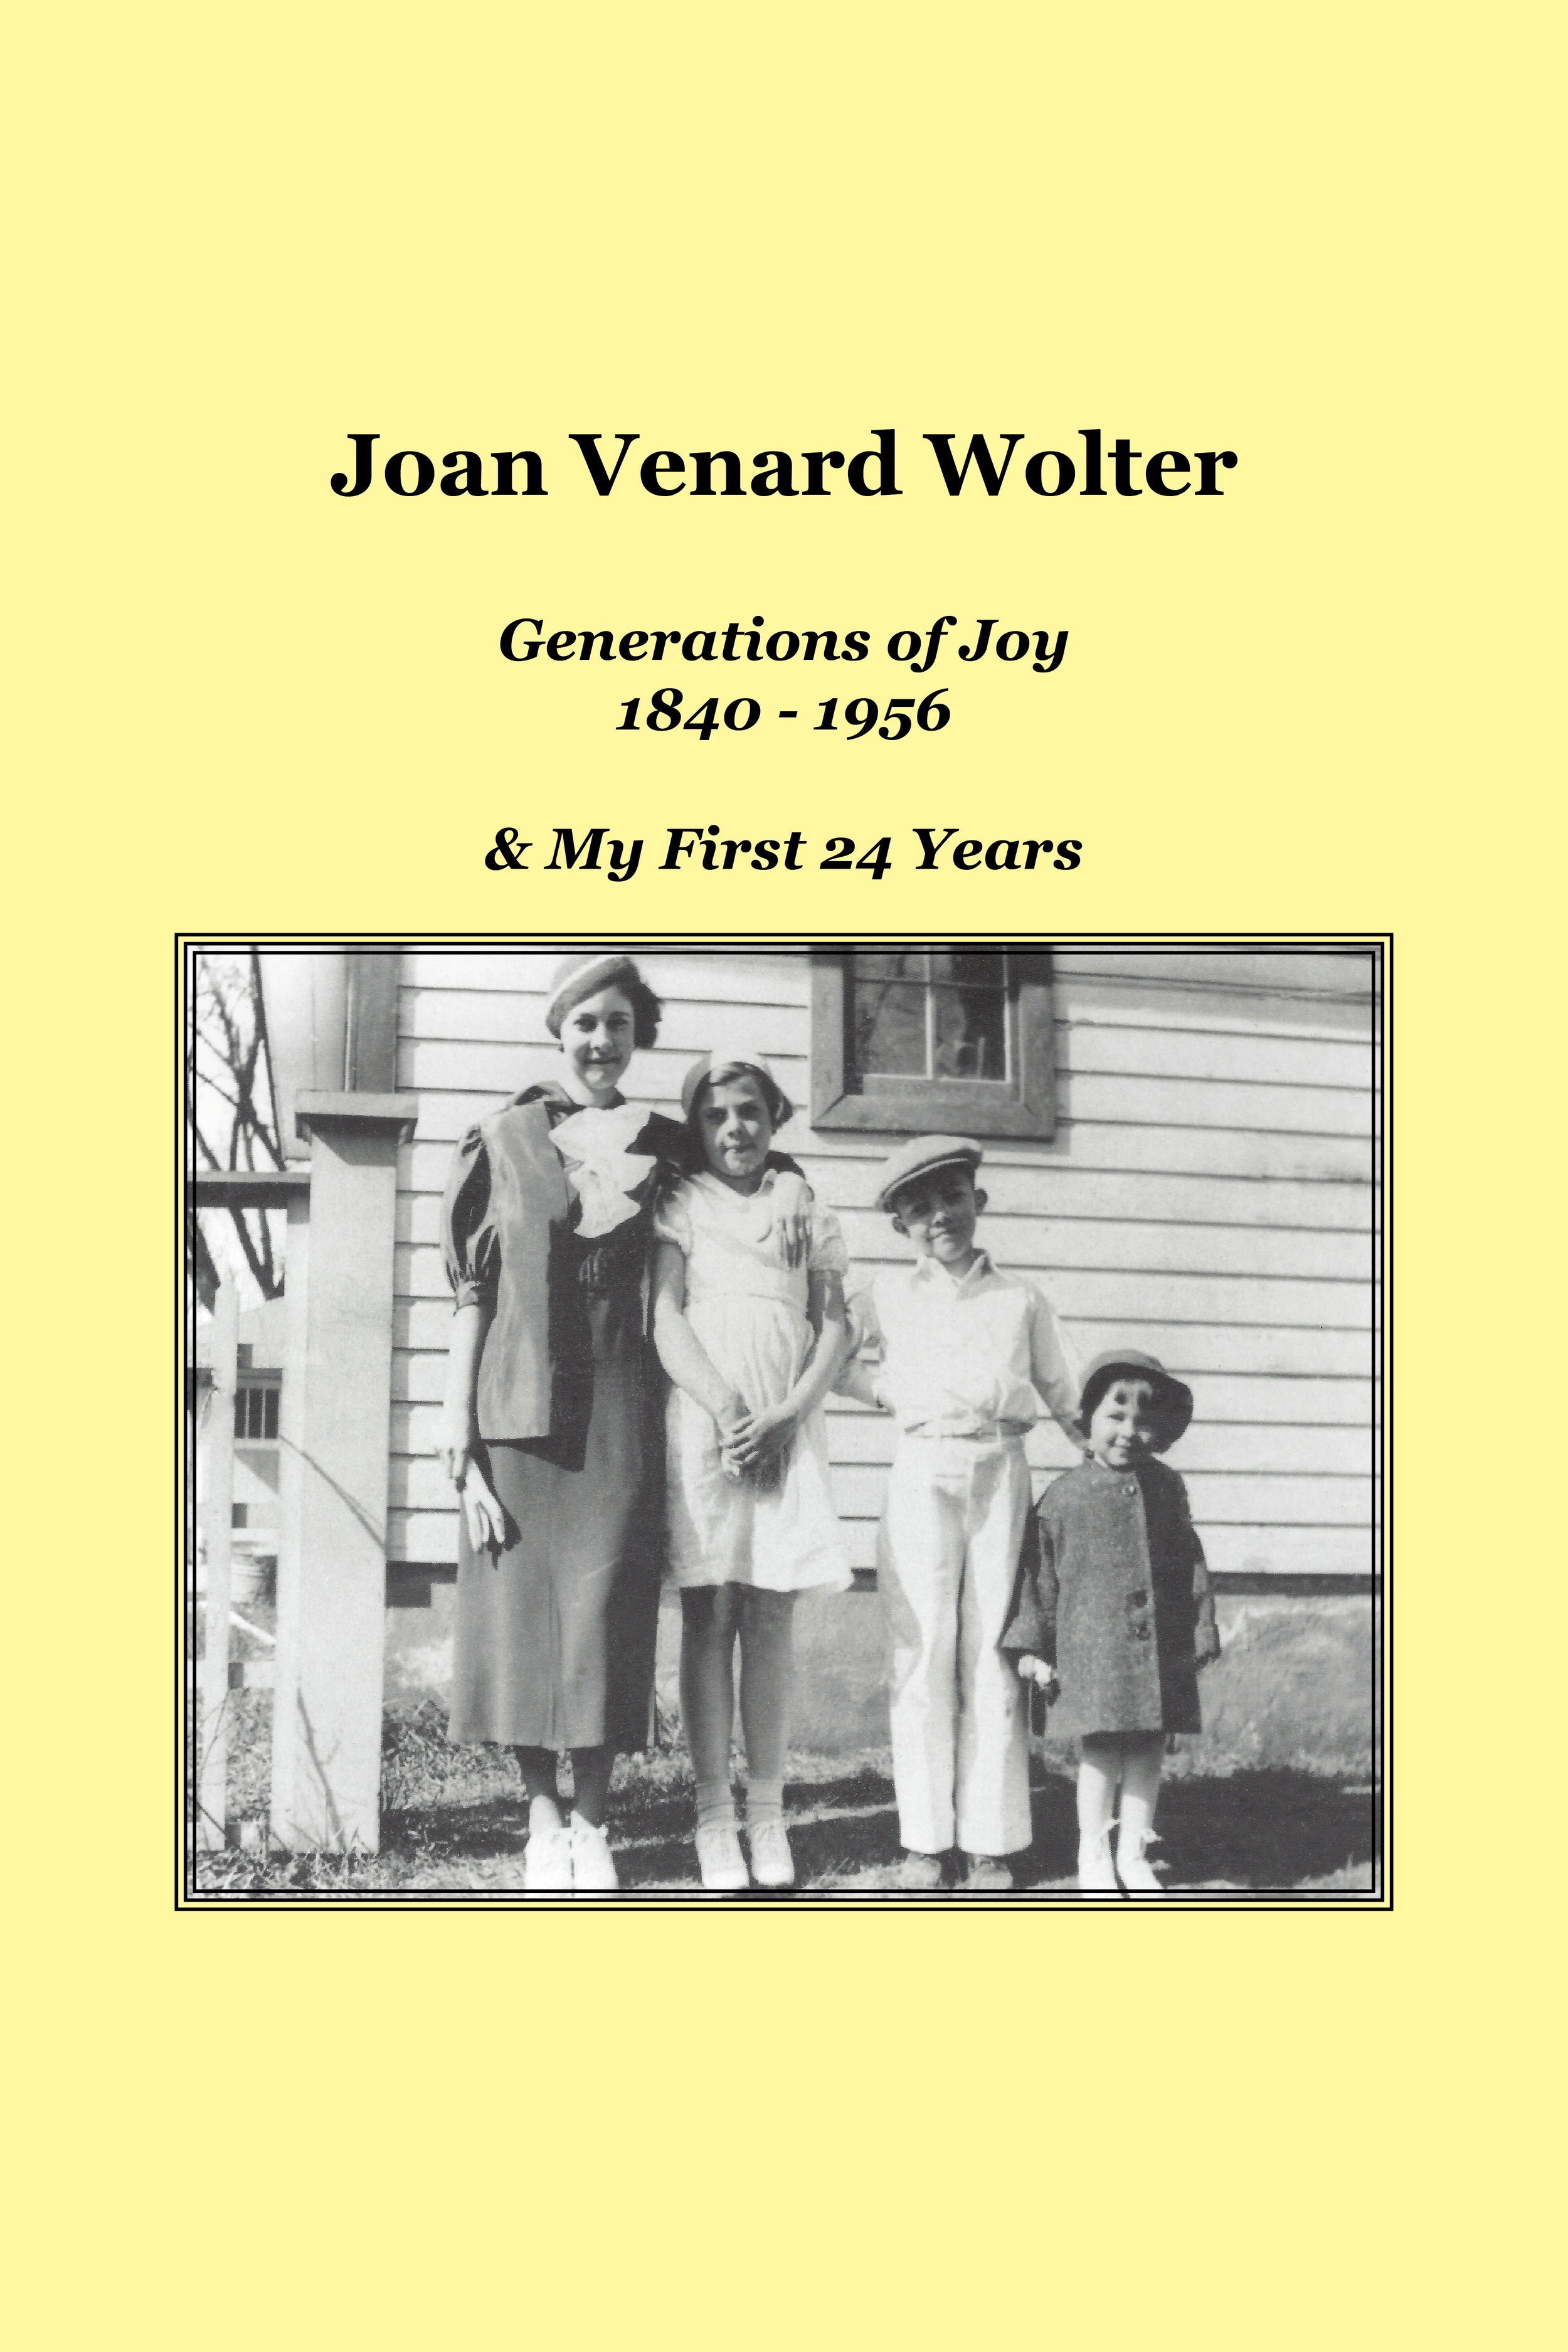 Joan Wolter Front Cover_1.jpg